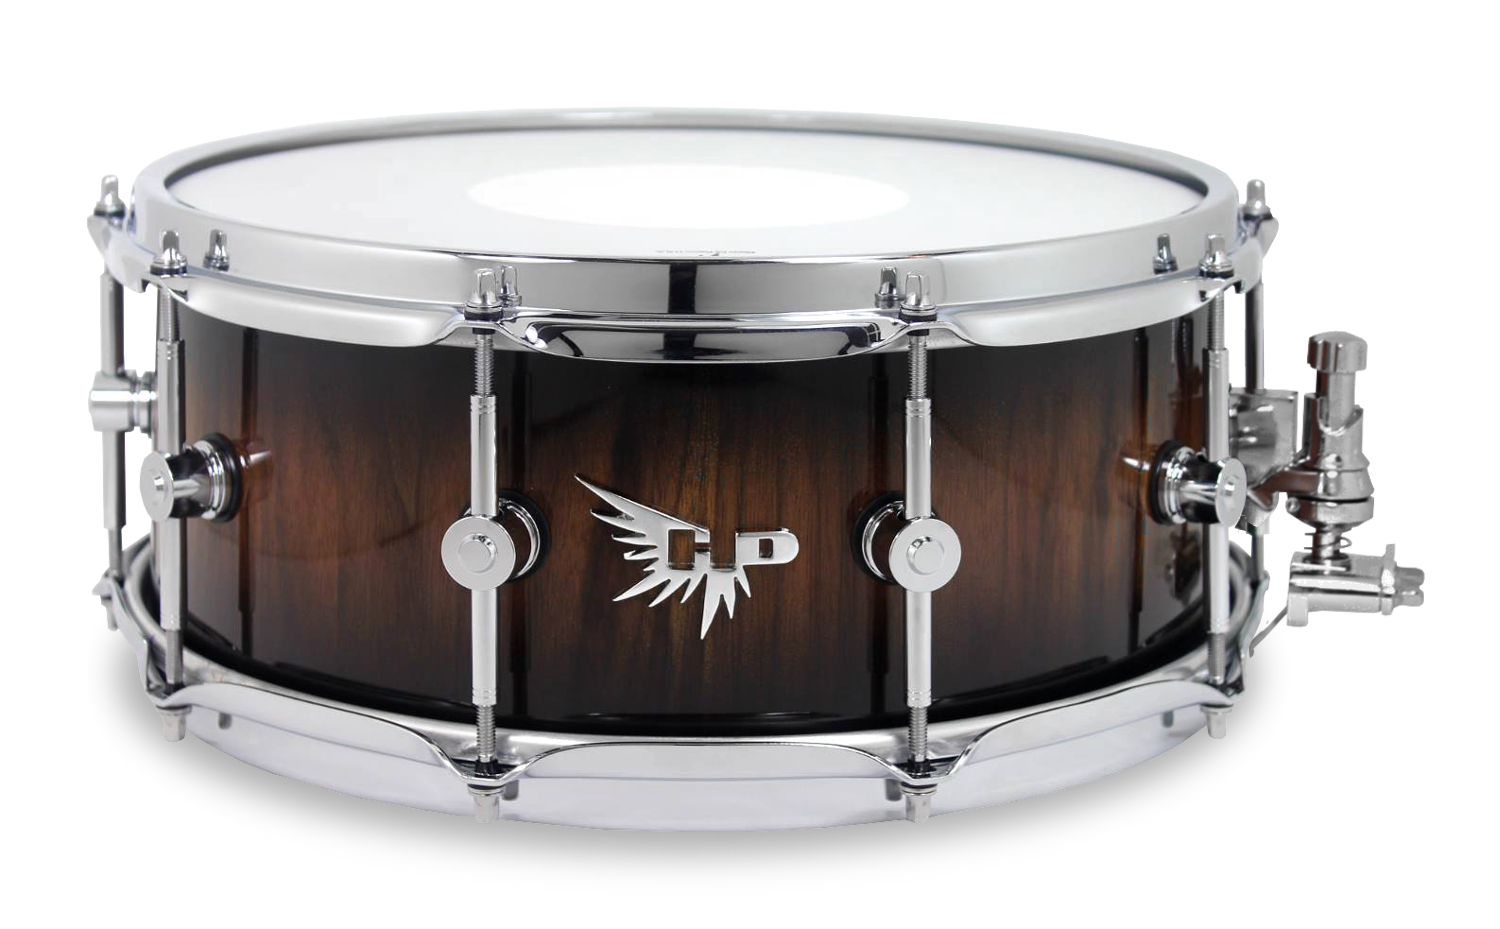 PNG Snare Drum - 86843